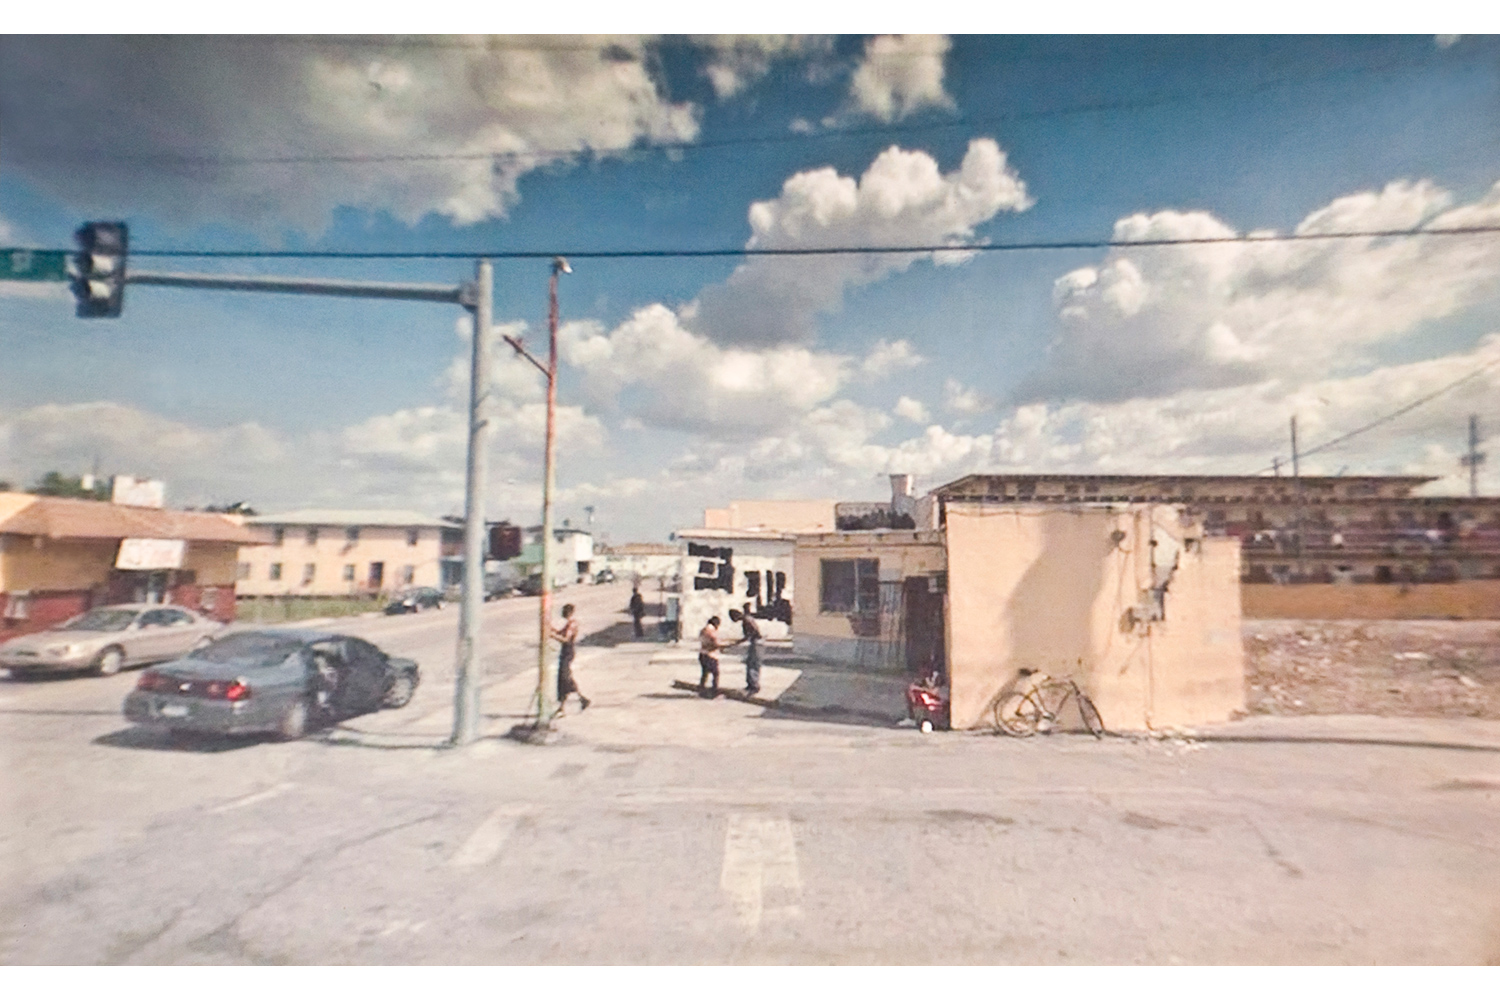 #26.688235, Belle Glade, FL (2007), 2010                                                                                             From the series A New American Picture